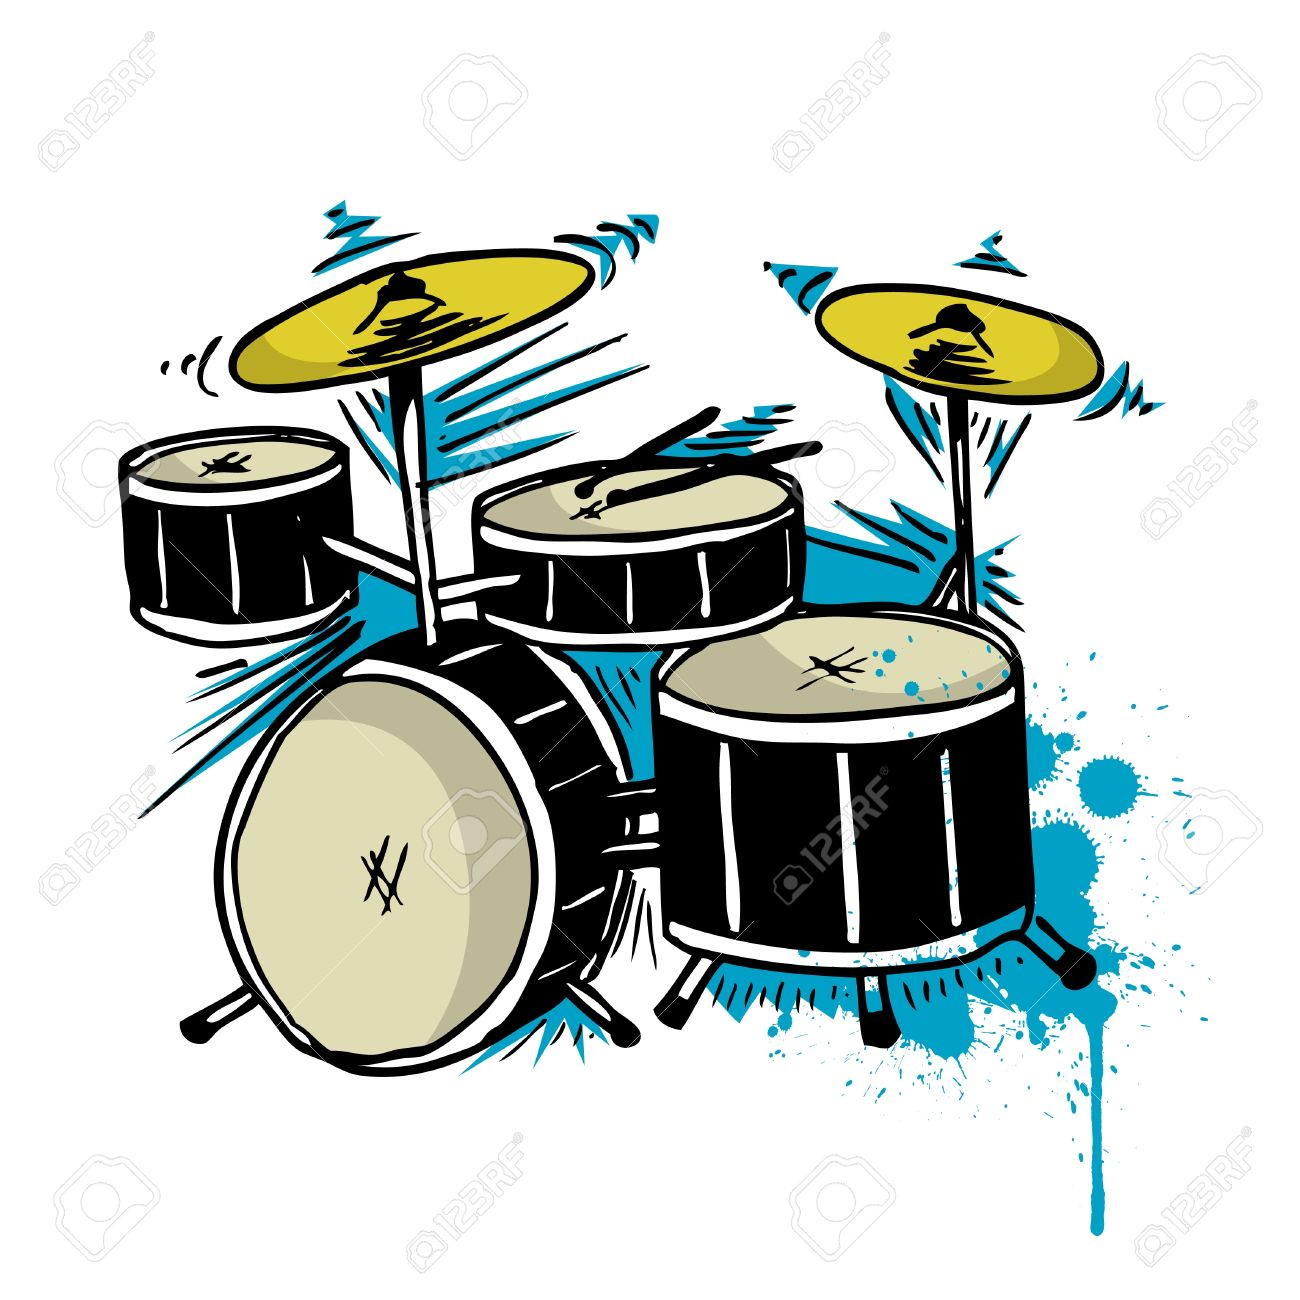 drum drawing Stock Vector - 9401313